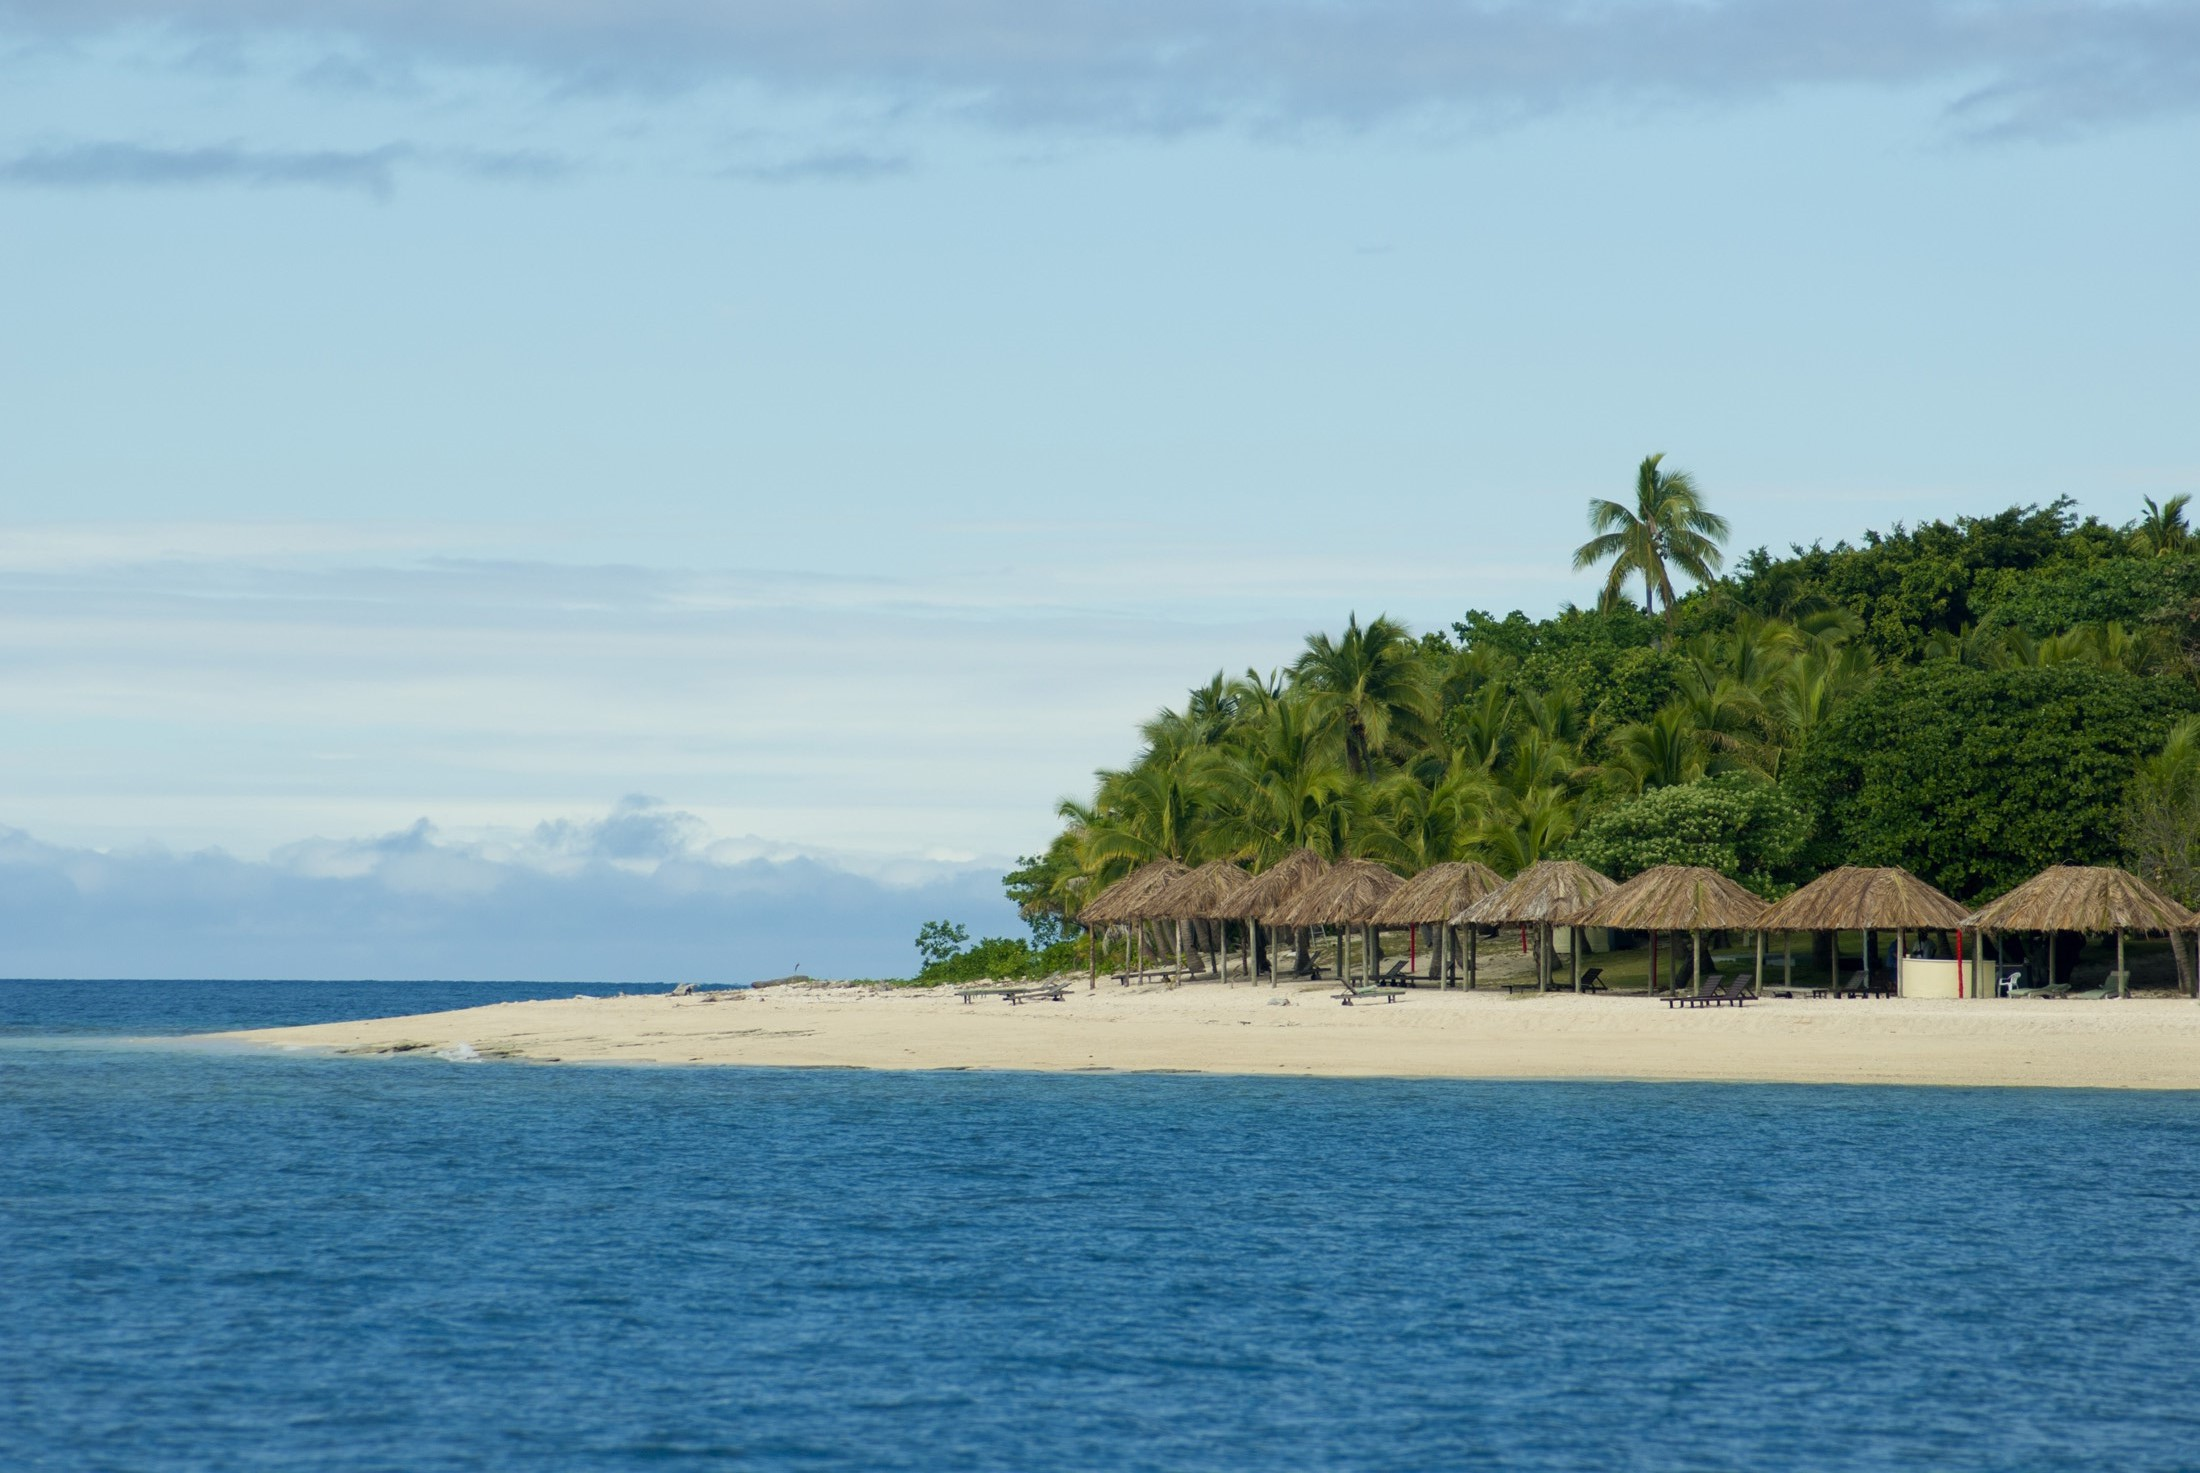 Thatched traditional beach umbrellas on Bounty island, Fiji, on a sunny sandy tropical beach with palm trees